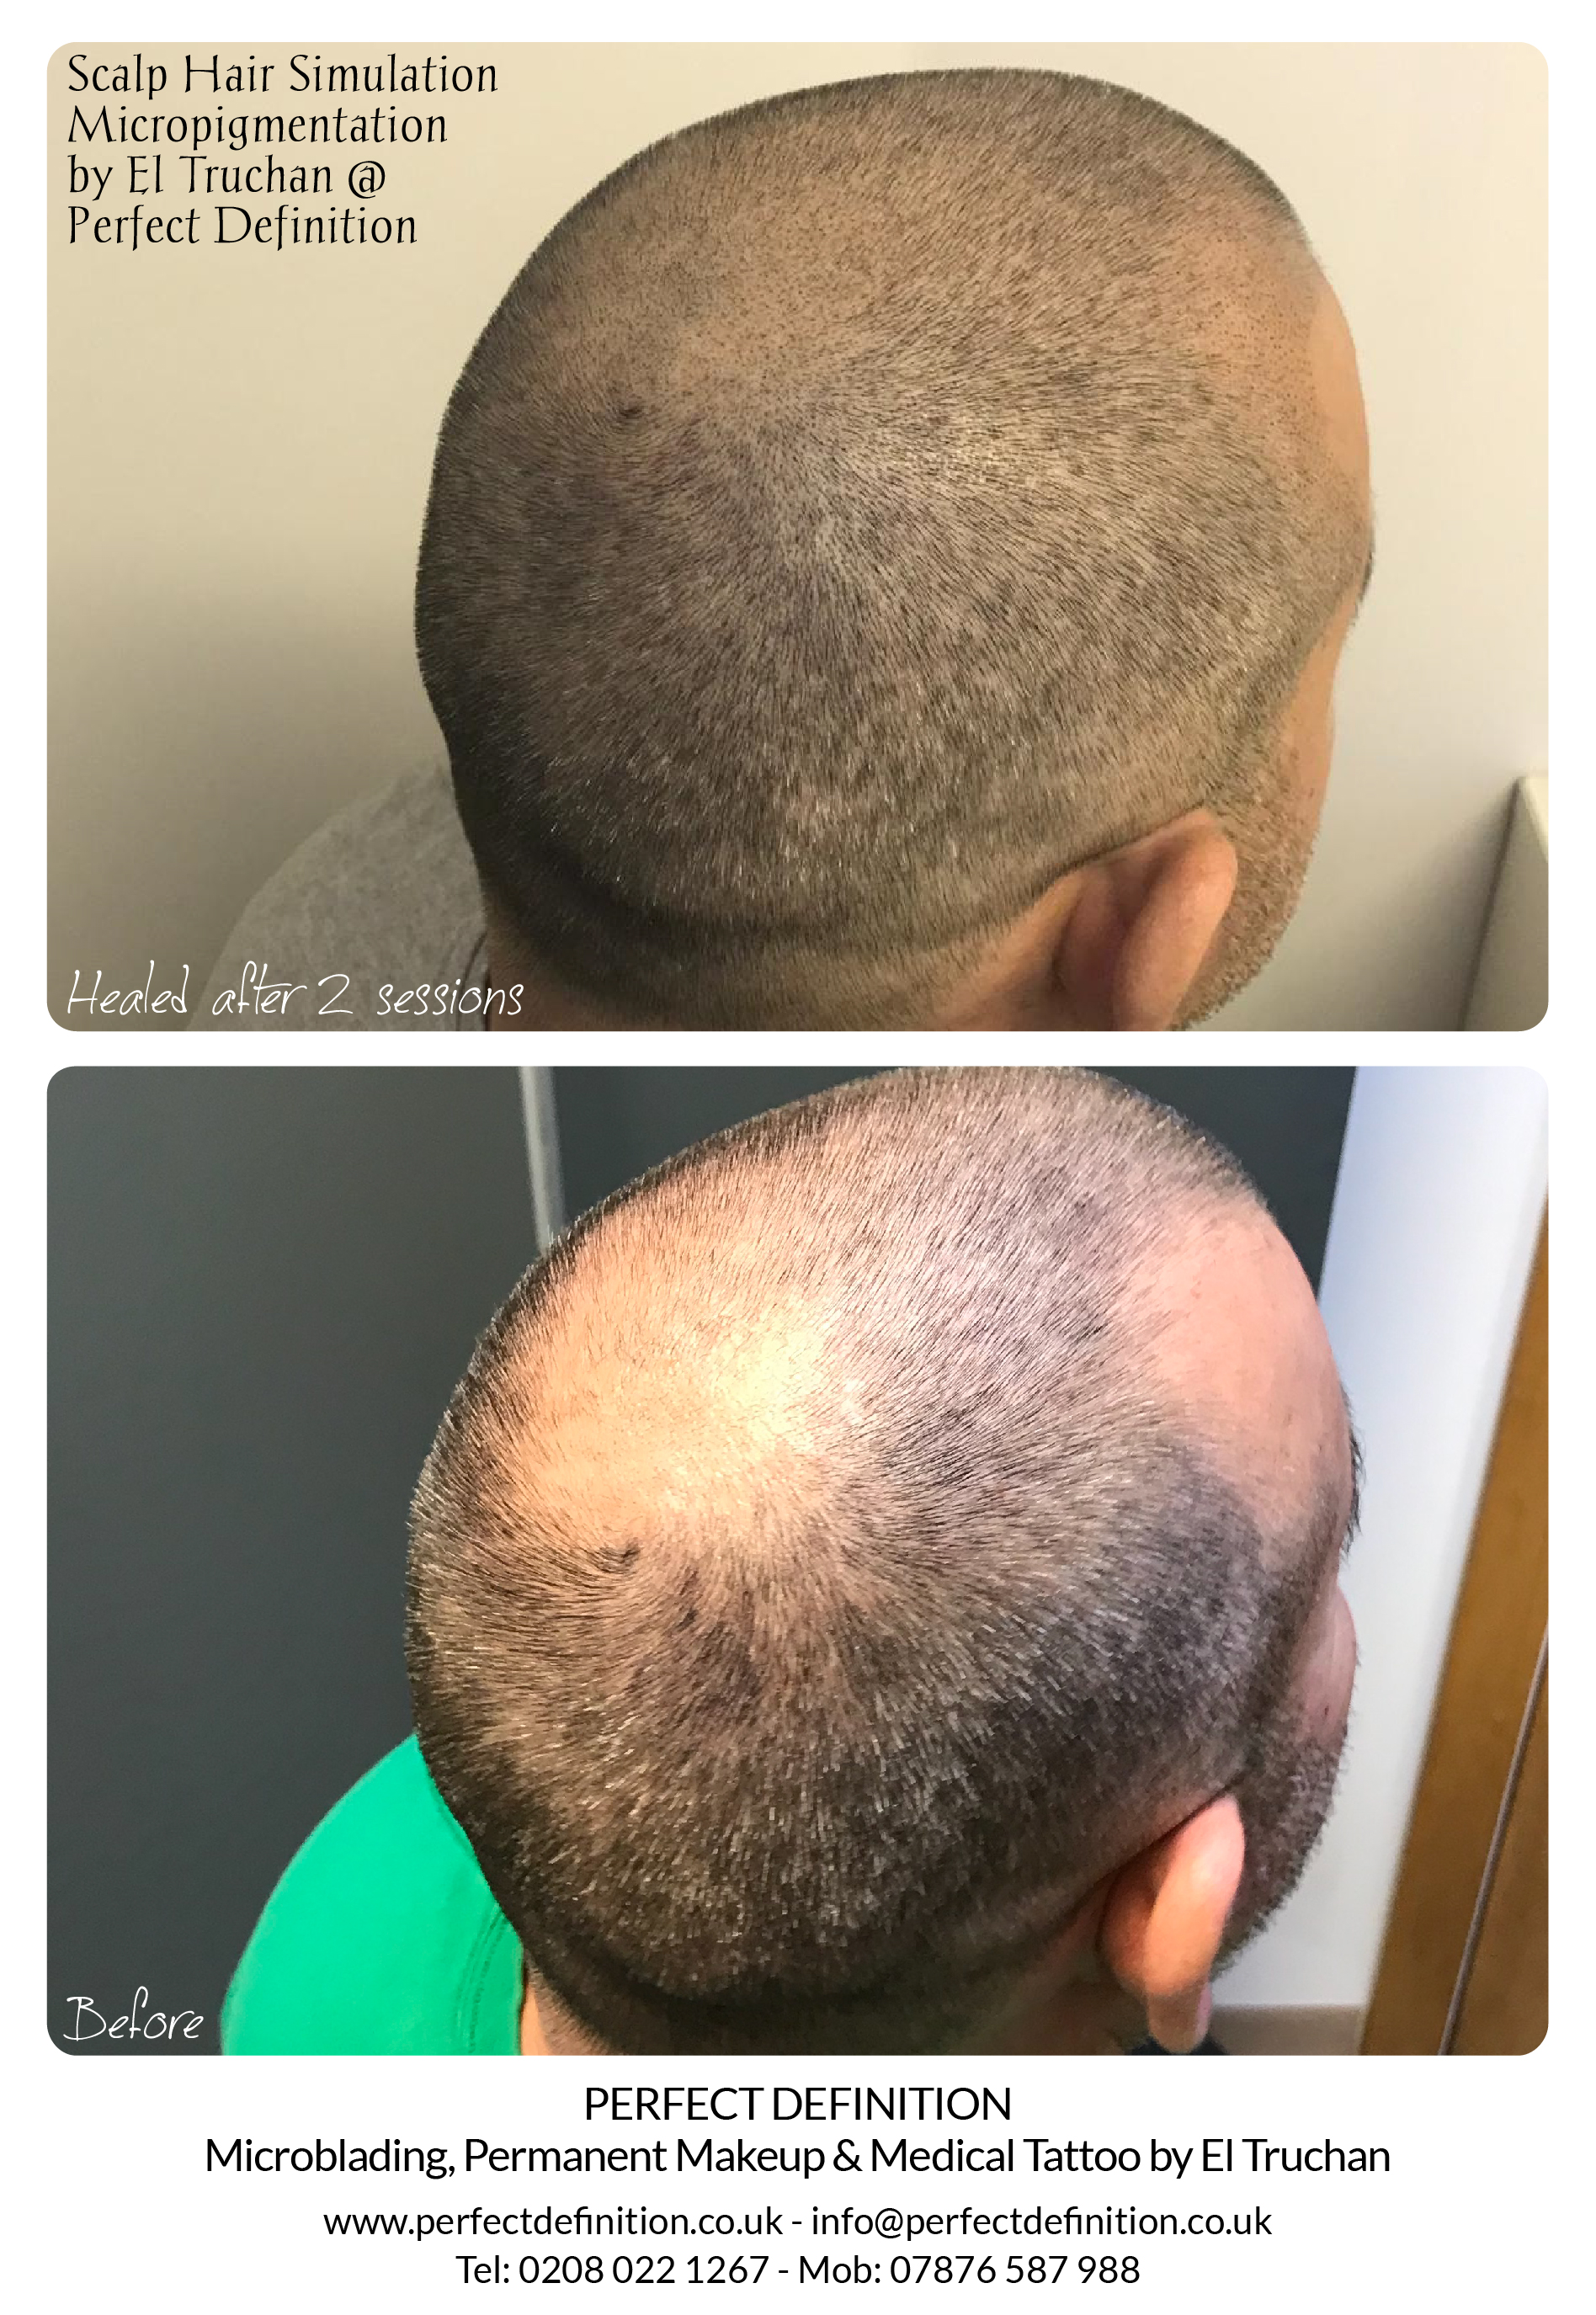 Scalp Hair Micropigmentation